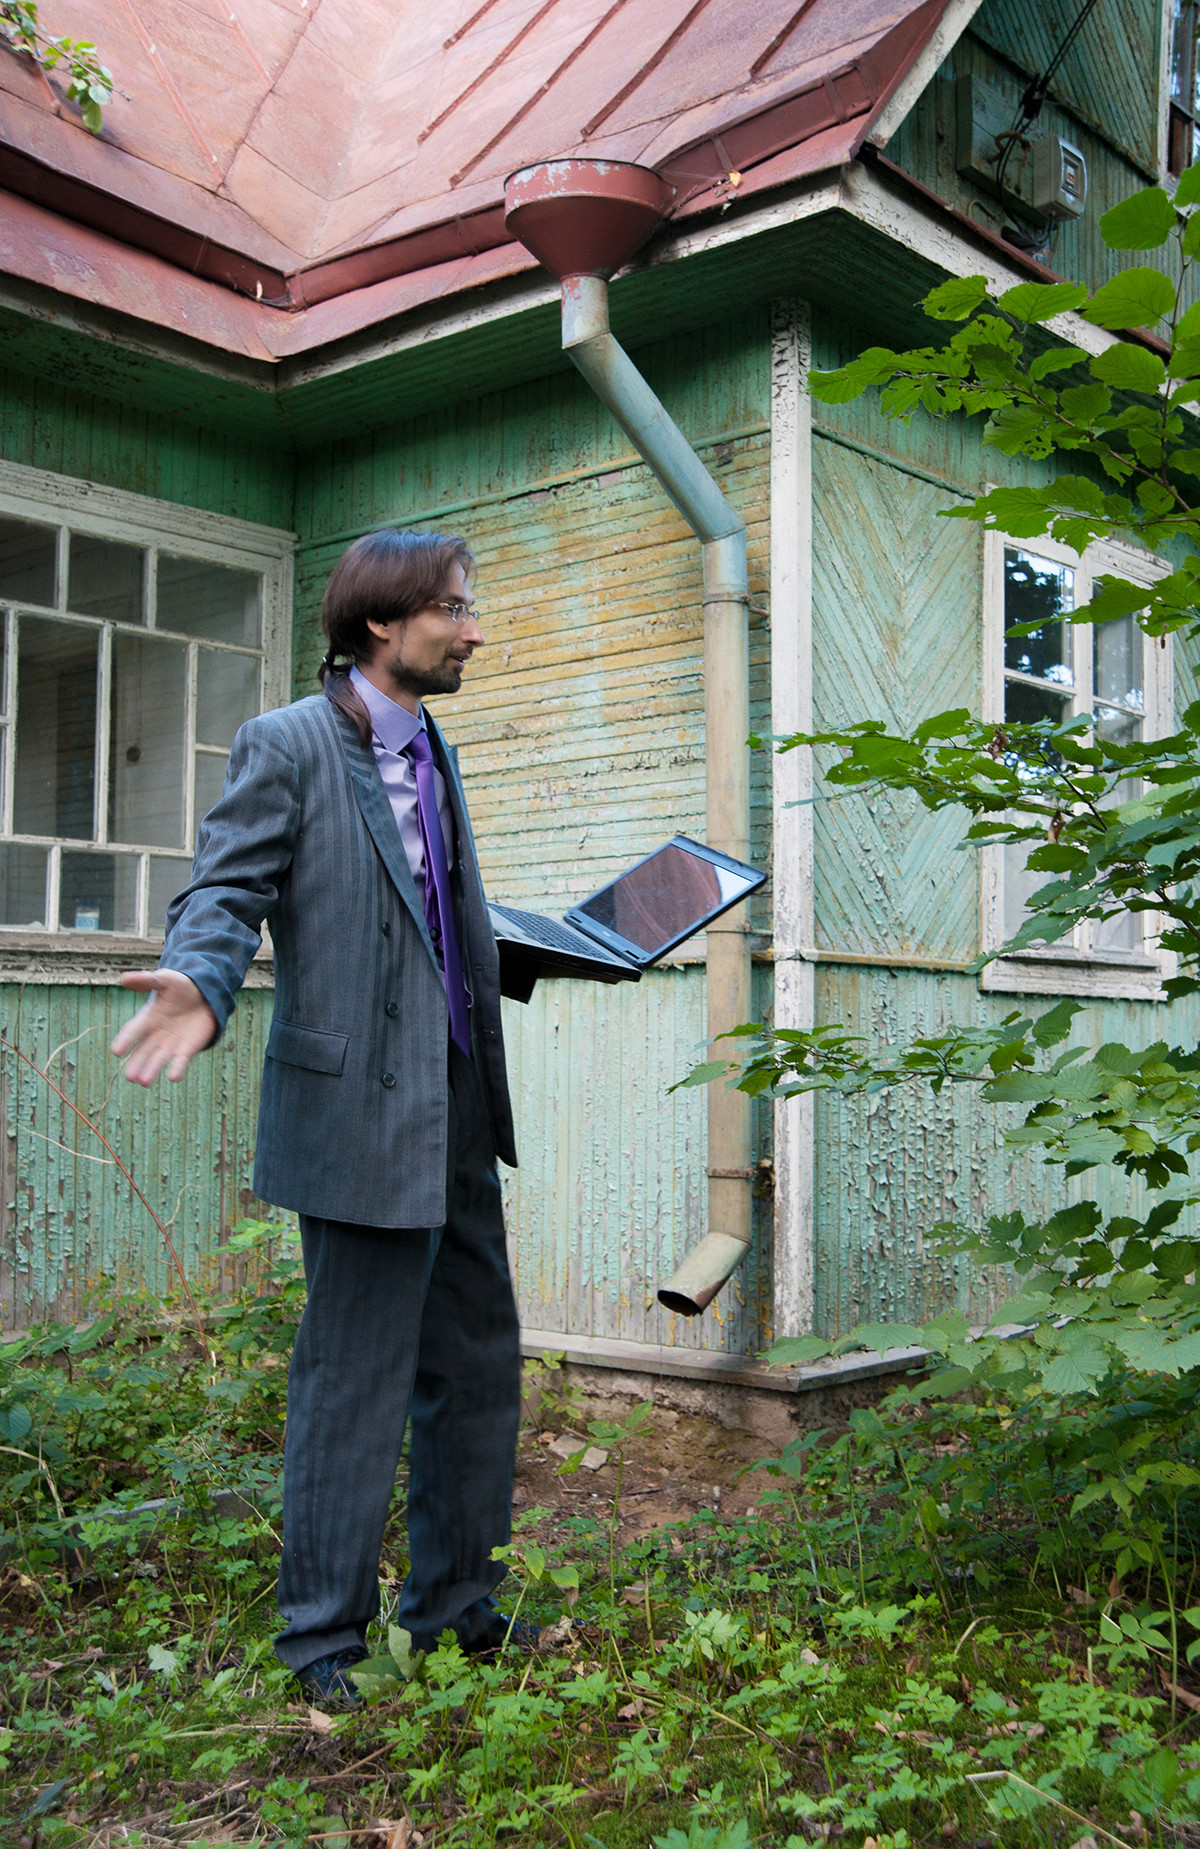 During this coronavirus quarantine some people installed special signal booster devices to work from the dacha... but still no Wi-Fi connection